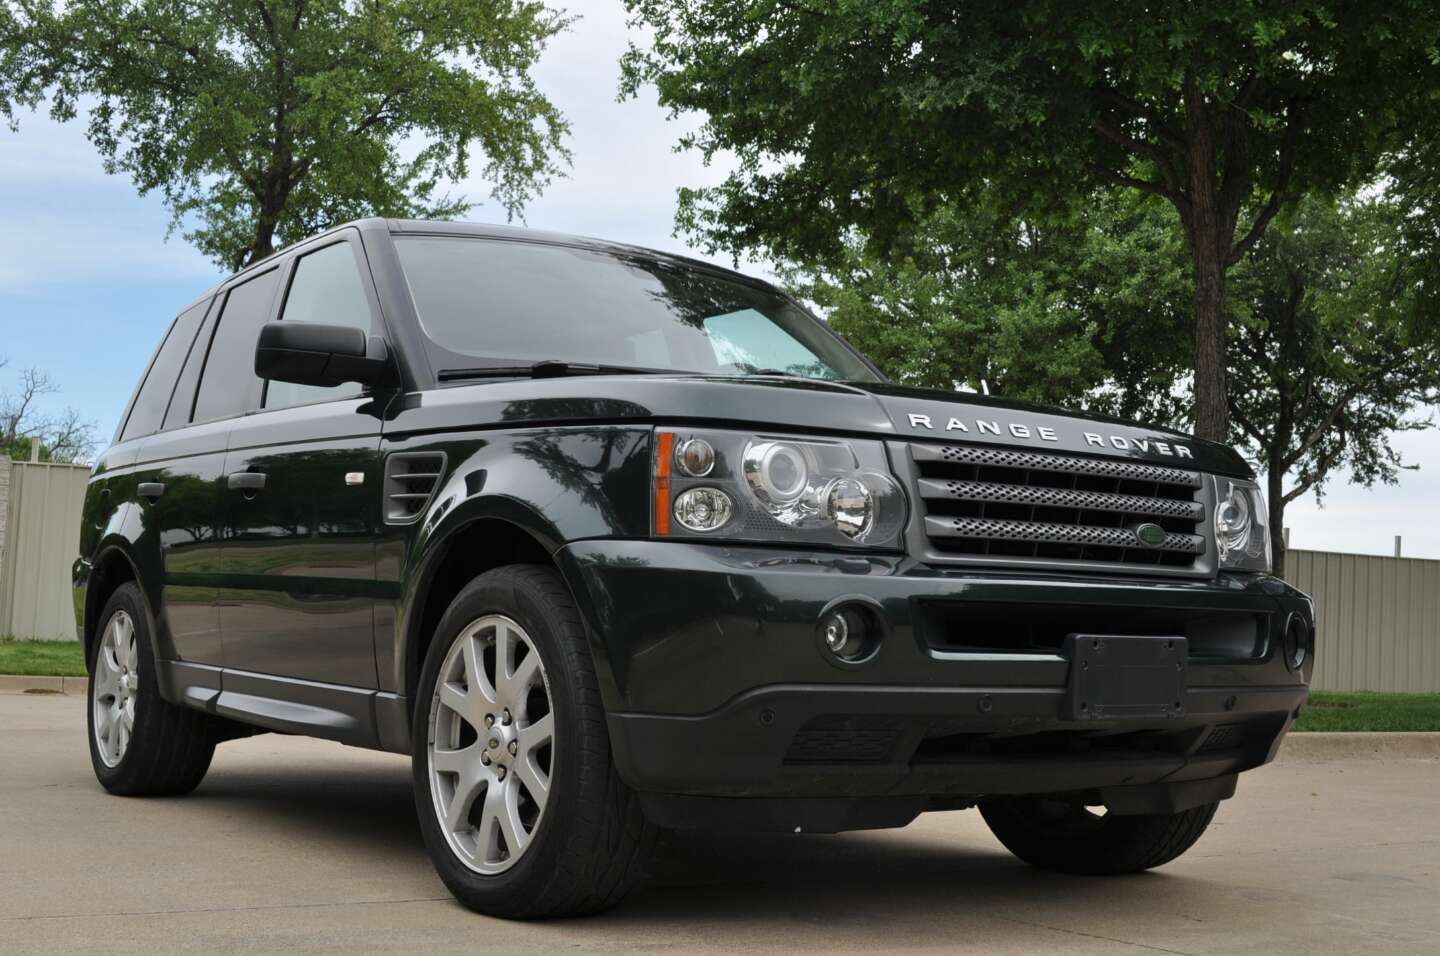 2009 land rover range rover sport hse for sale in dallas tx 5miles buy and sell. Black Bedroom Furniture Sets. Home Design Ideas